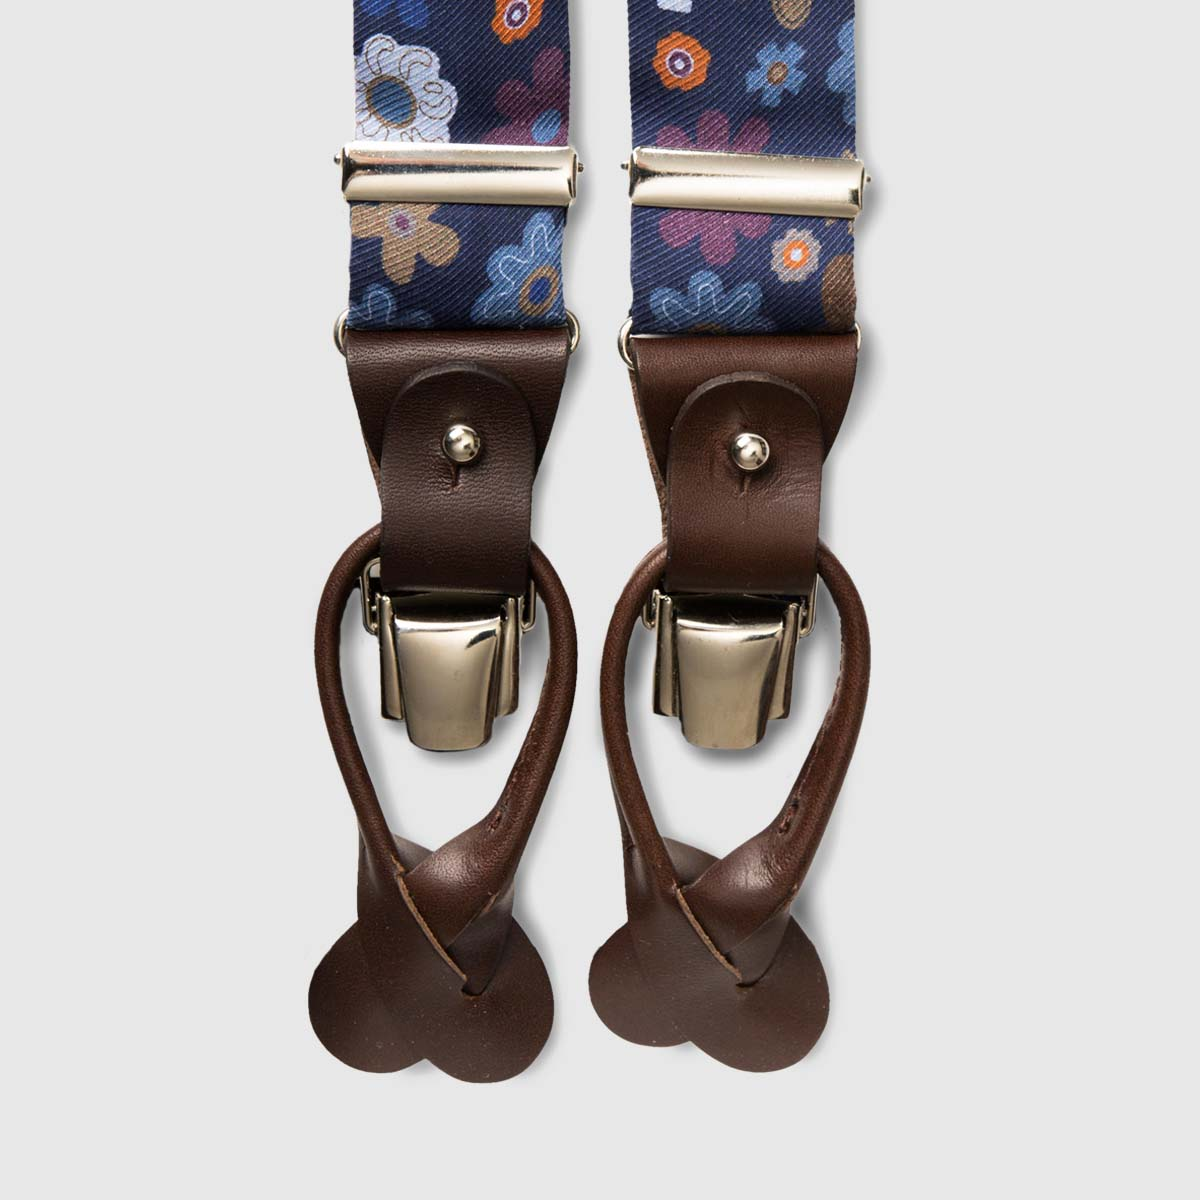 Printed Silk Blue braces with brown leather ends